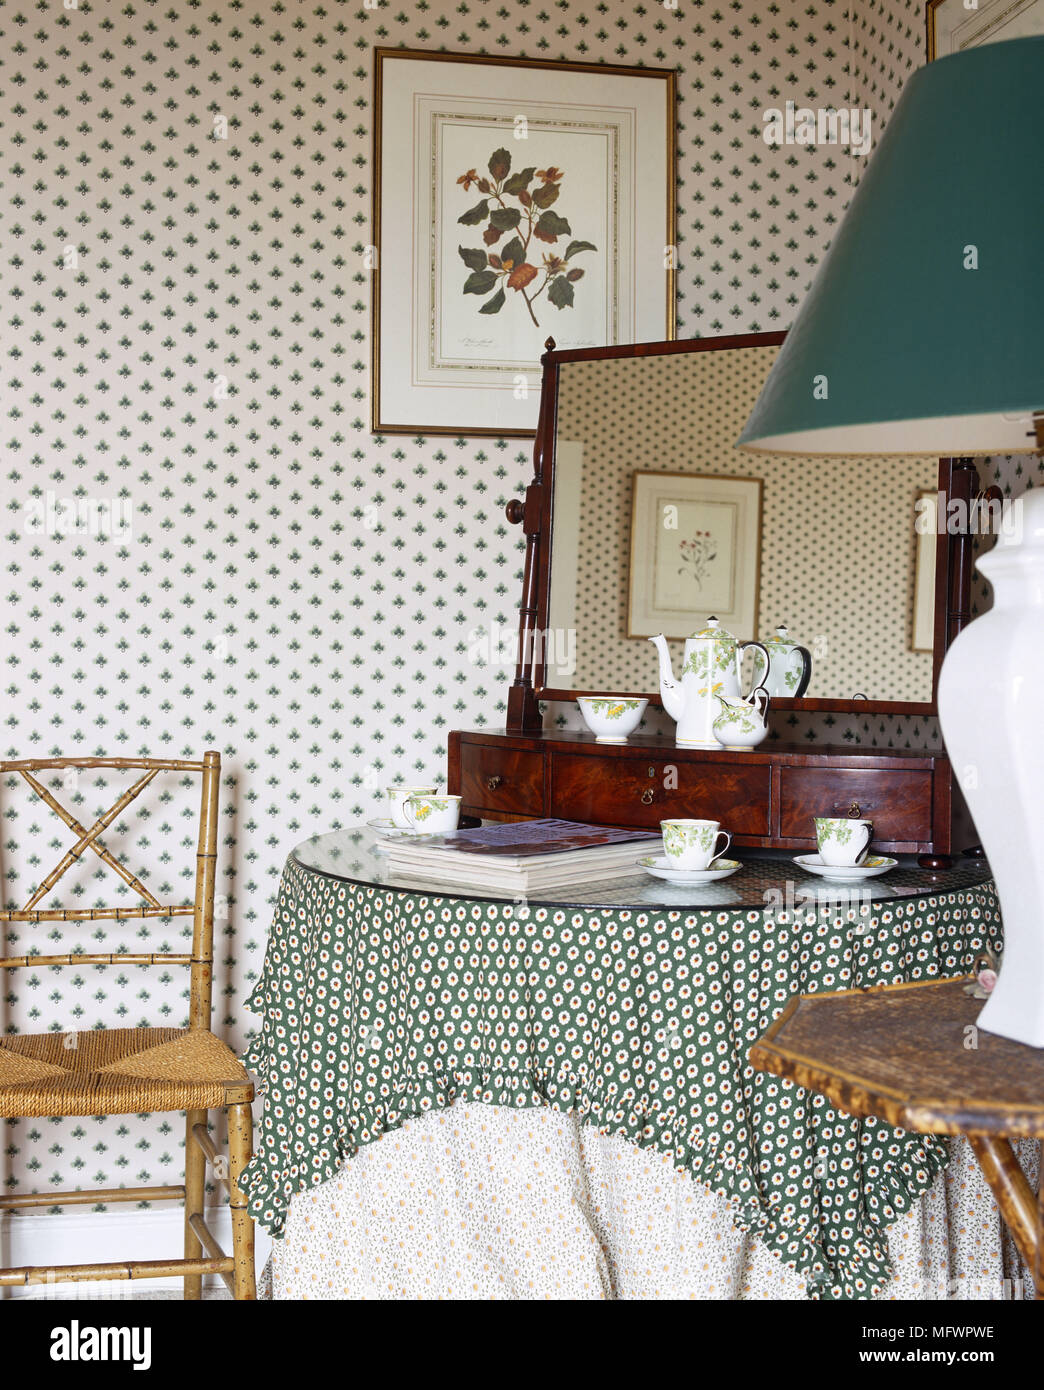 Dressing Table With Mirror And Teaset Next To Wallpapered Wall With Framed  Floral Print And Table